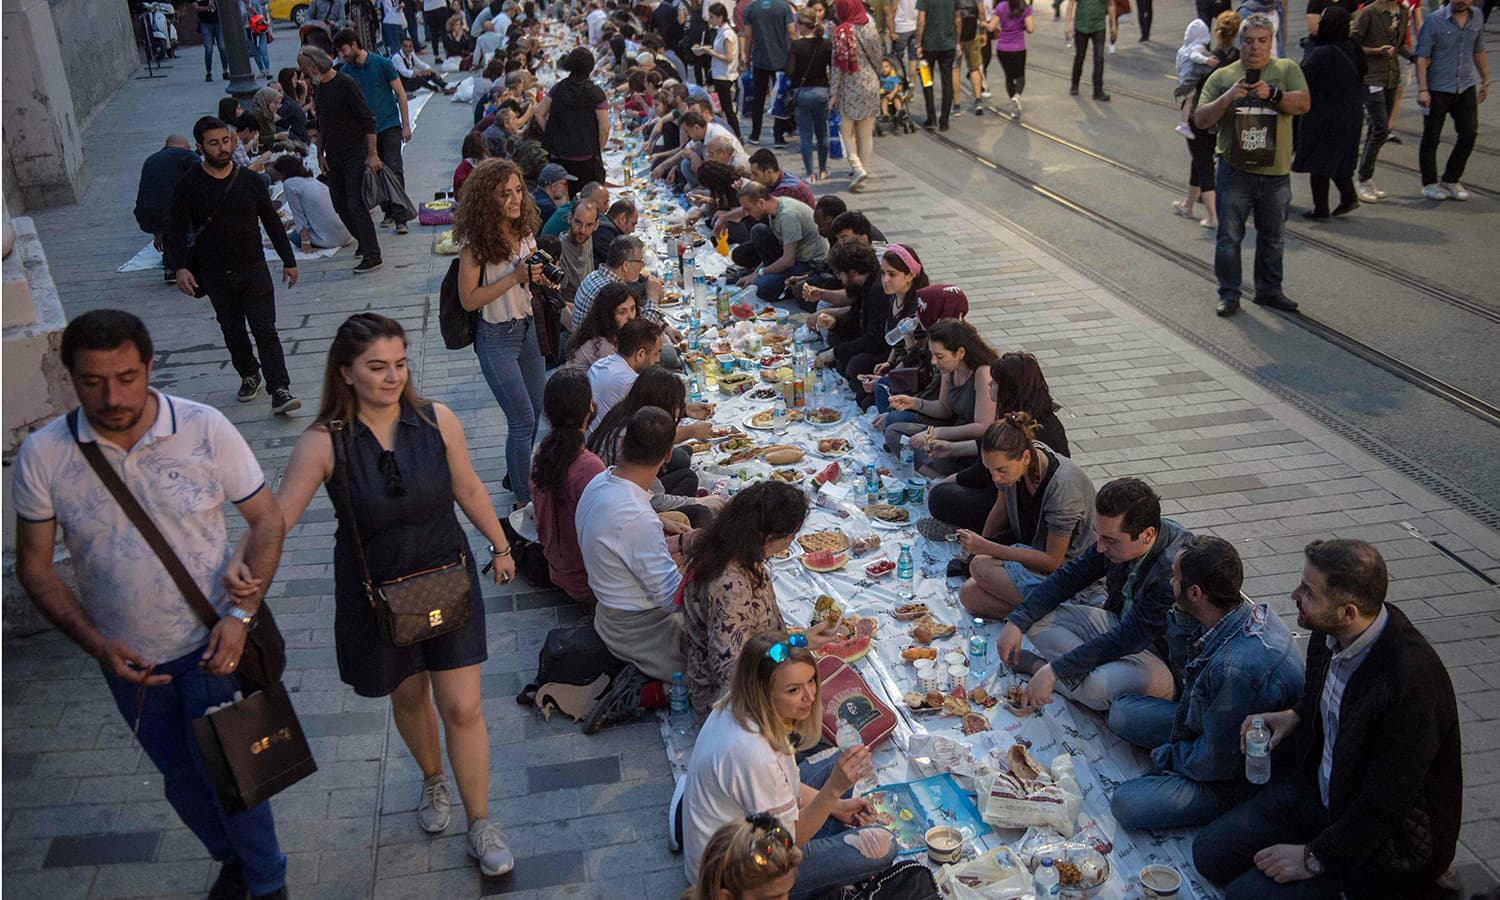 People break their fast on May 16 near Taksim Square in Istanbul, Turkey during the first day of the holy month of Ramazan. — AFP